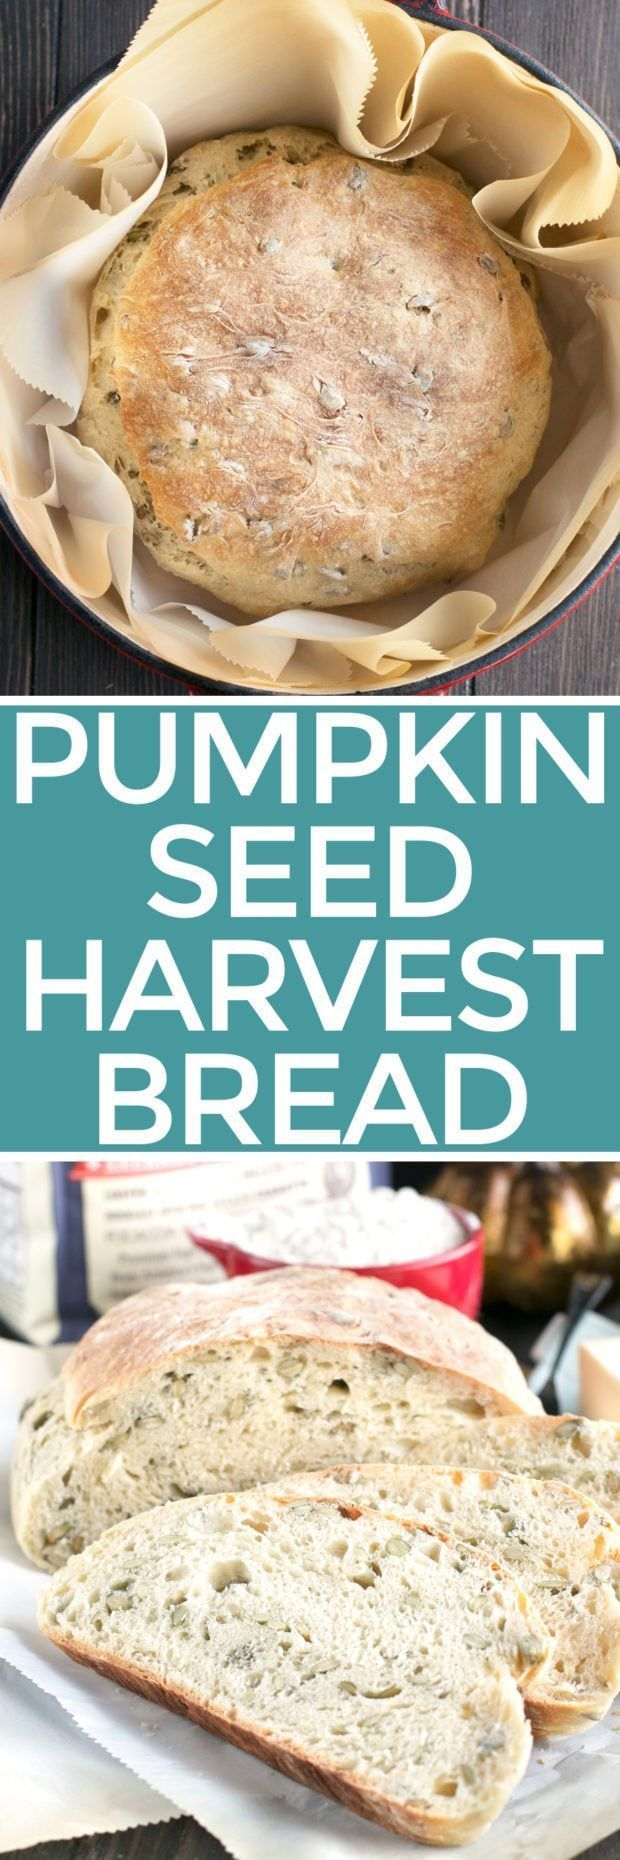 Harvest Pumpkin Seed Bread is the golden brown, crusty, crunchy artisanal bread you've been dying to eat and too afraid to make. However you won't believe how easy peasy this bread is to make! In a few simple steps, and with the help of my favorite bread flour, your are going to be making this bread all season long! Harvest Pumpkin Seed Bread   cakenknife.com #artisanbread #recipe